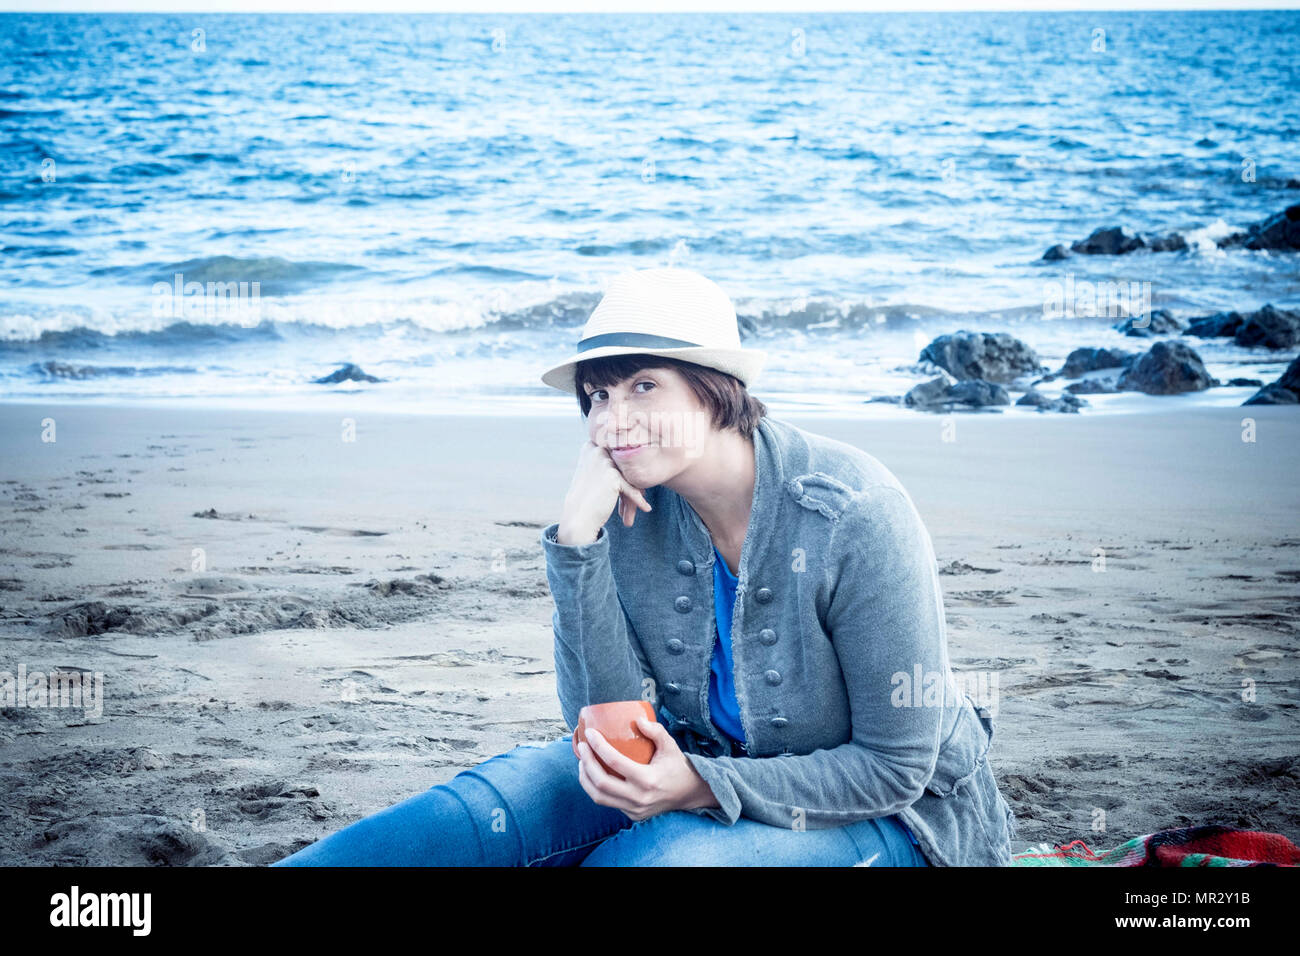 nice beautiful young lady smiling with hat sitting down at the beach in winter. vacation nice leisure concept outdoor. - Stock Image